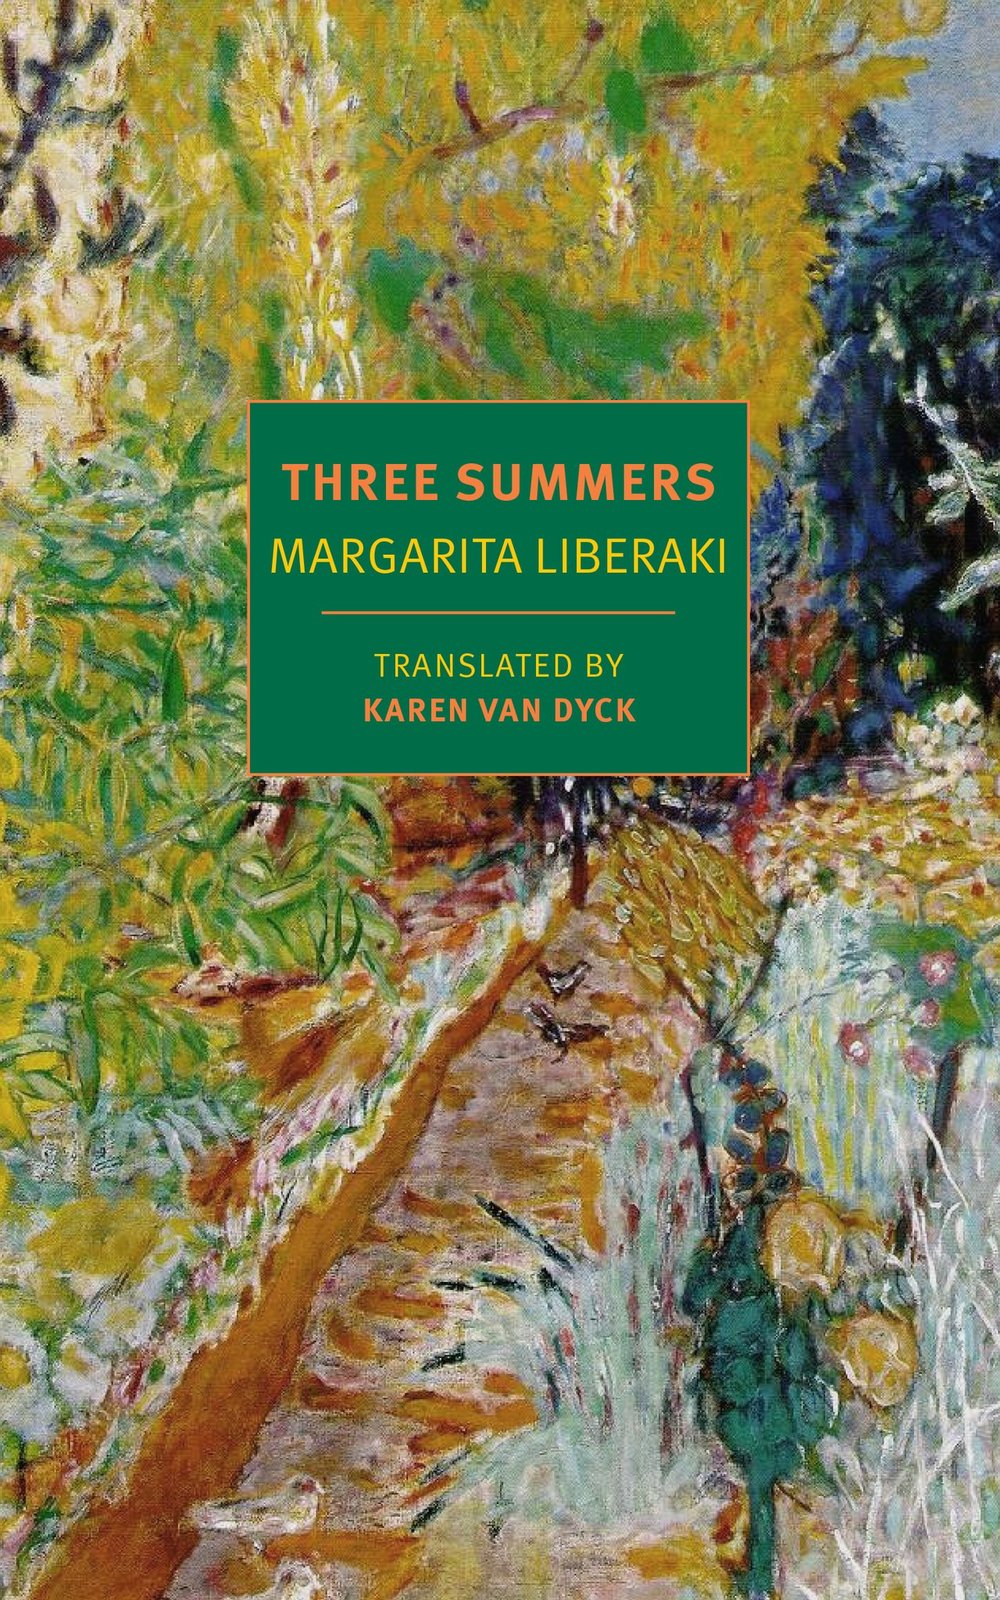 Three Summers, a novel by Margarita Liberaki